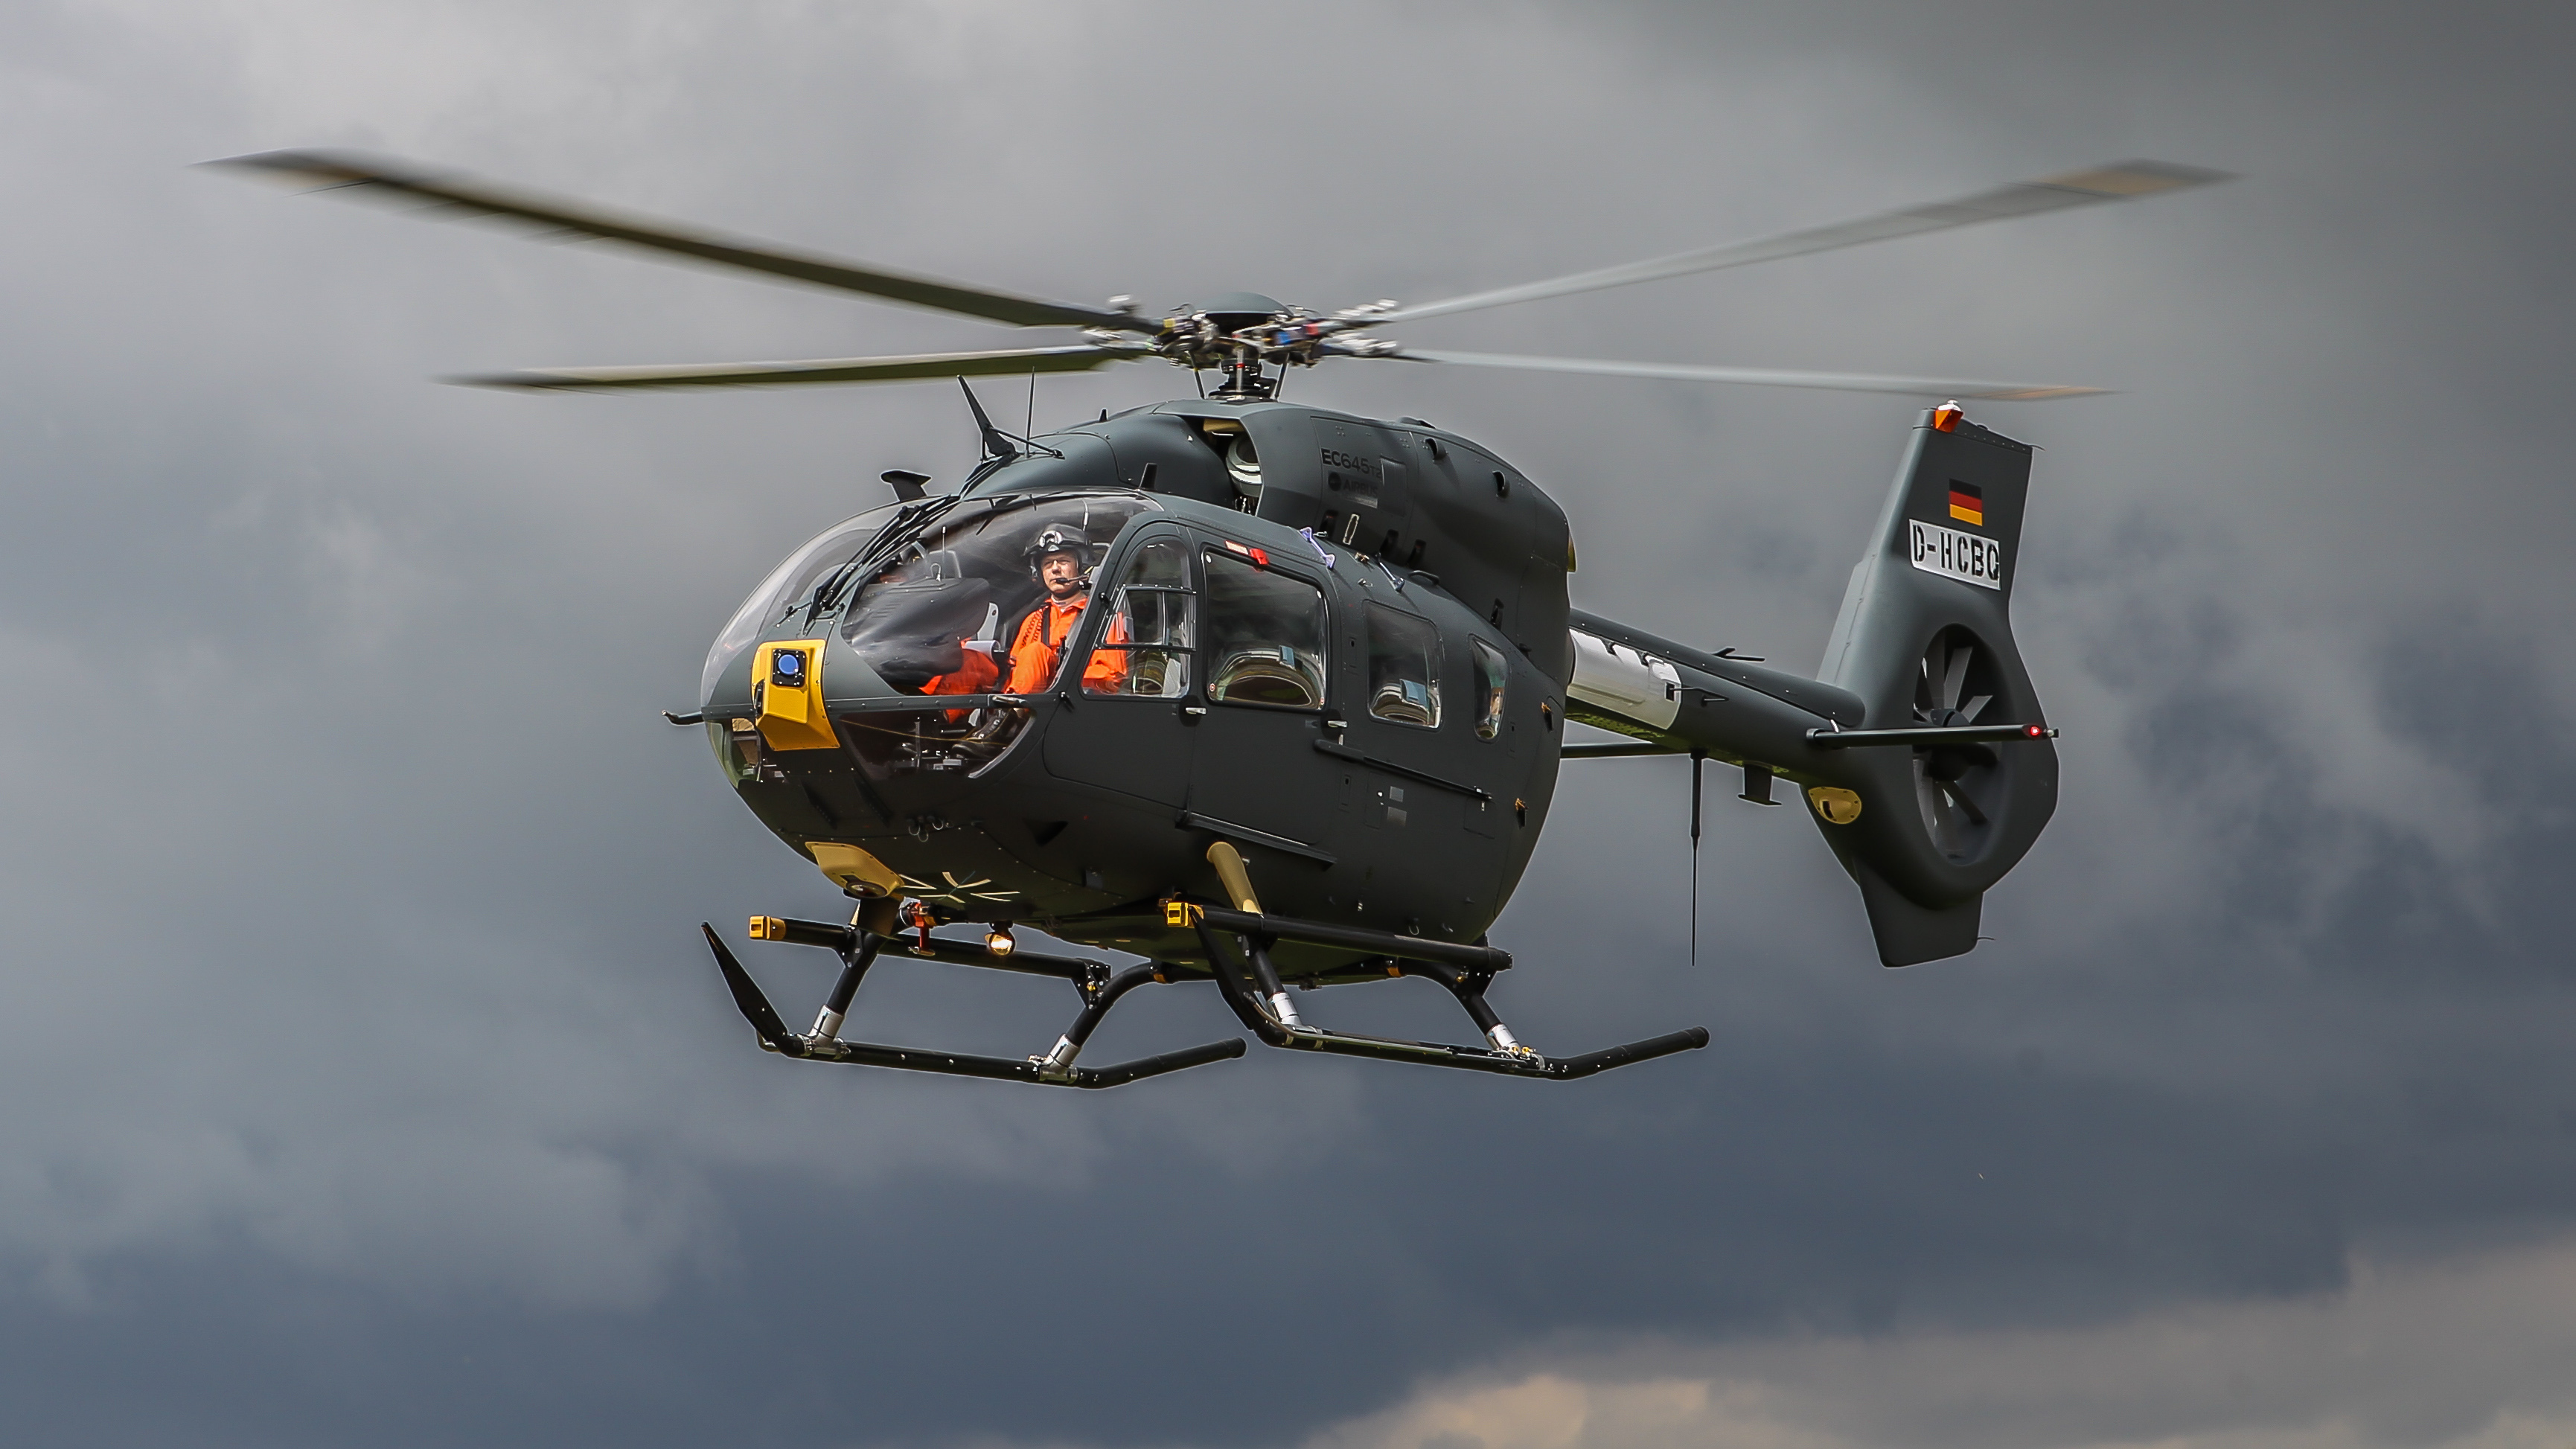 H145M_©_Airbus Helicopters_Charles_Abarr